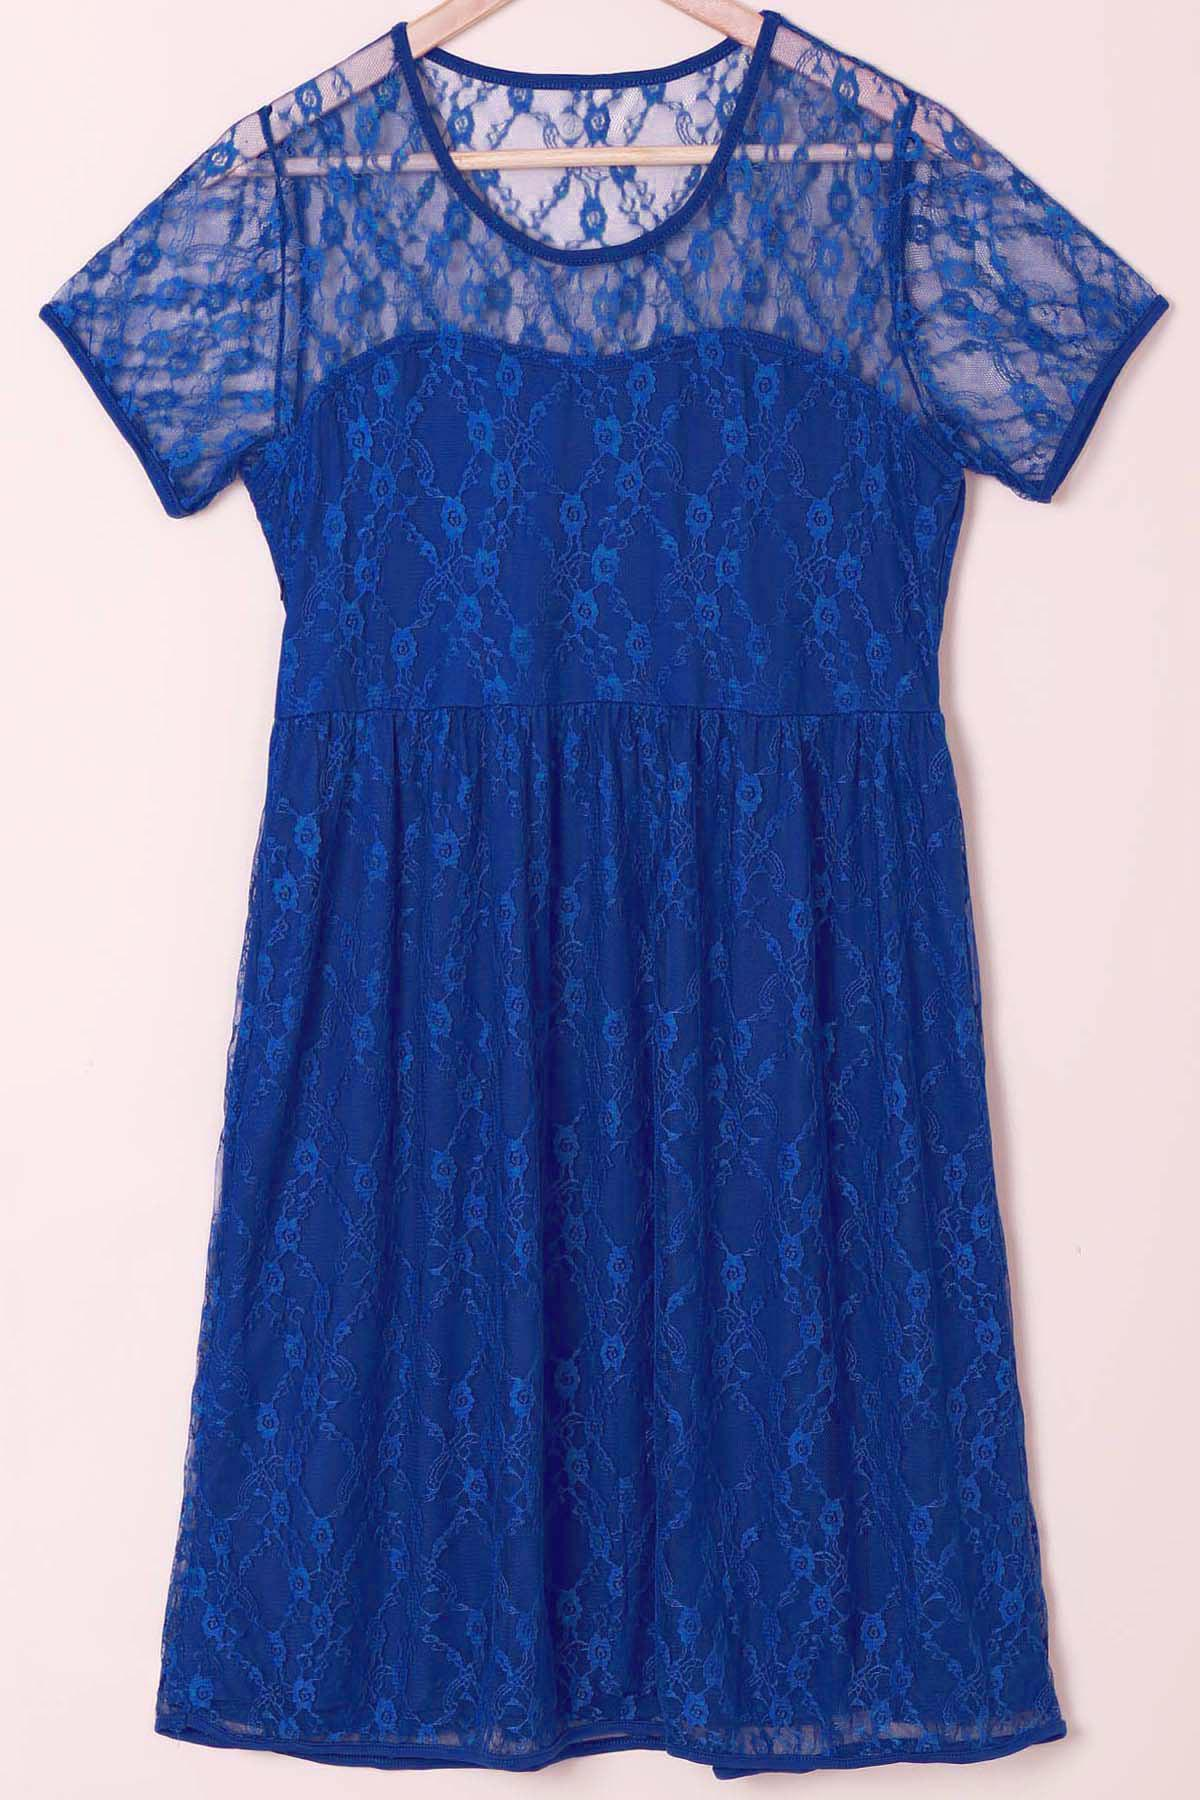 Sexy Scoop Collar Short Sleeve Solid Color See-Through Women's Lace Dress - BLUE XL